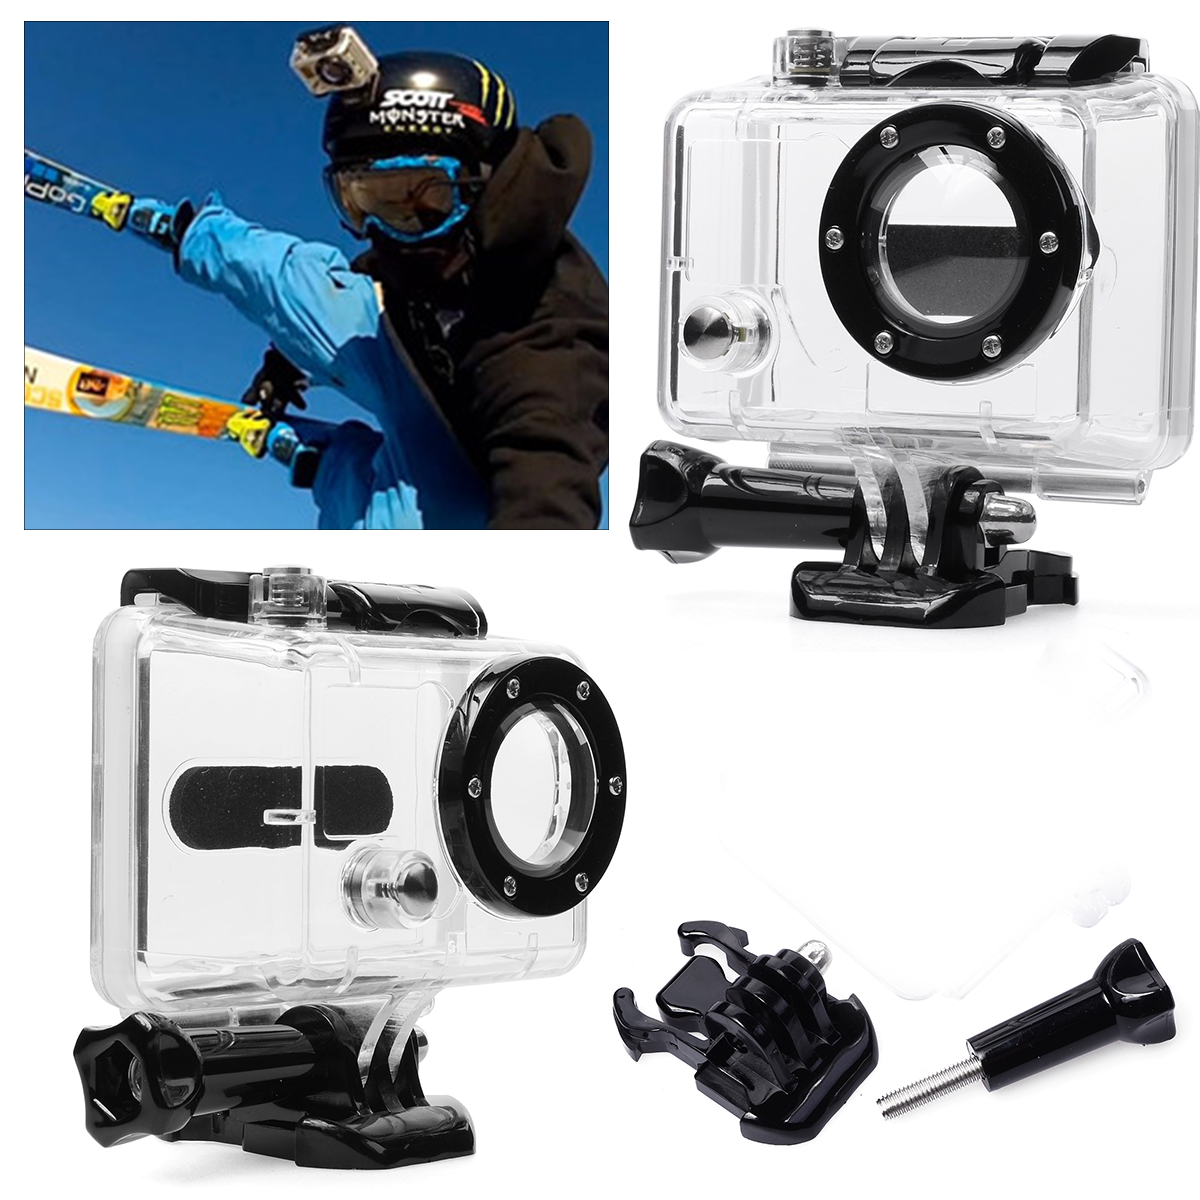 Underwater Waterproof Protective Housing Case for GoPro Hero 2 Camera OS084(China (Mainland))